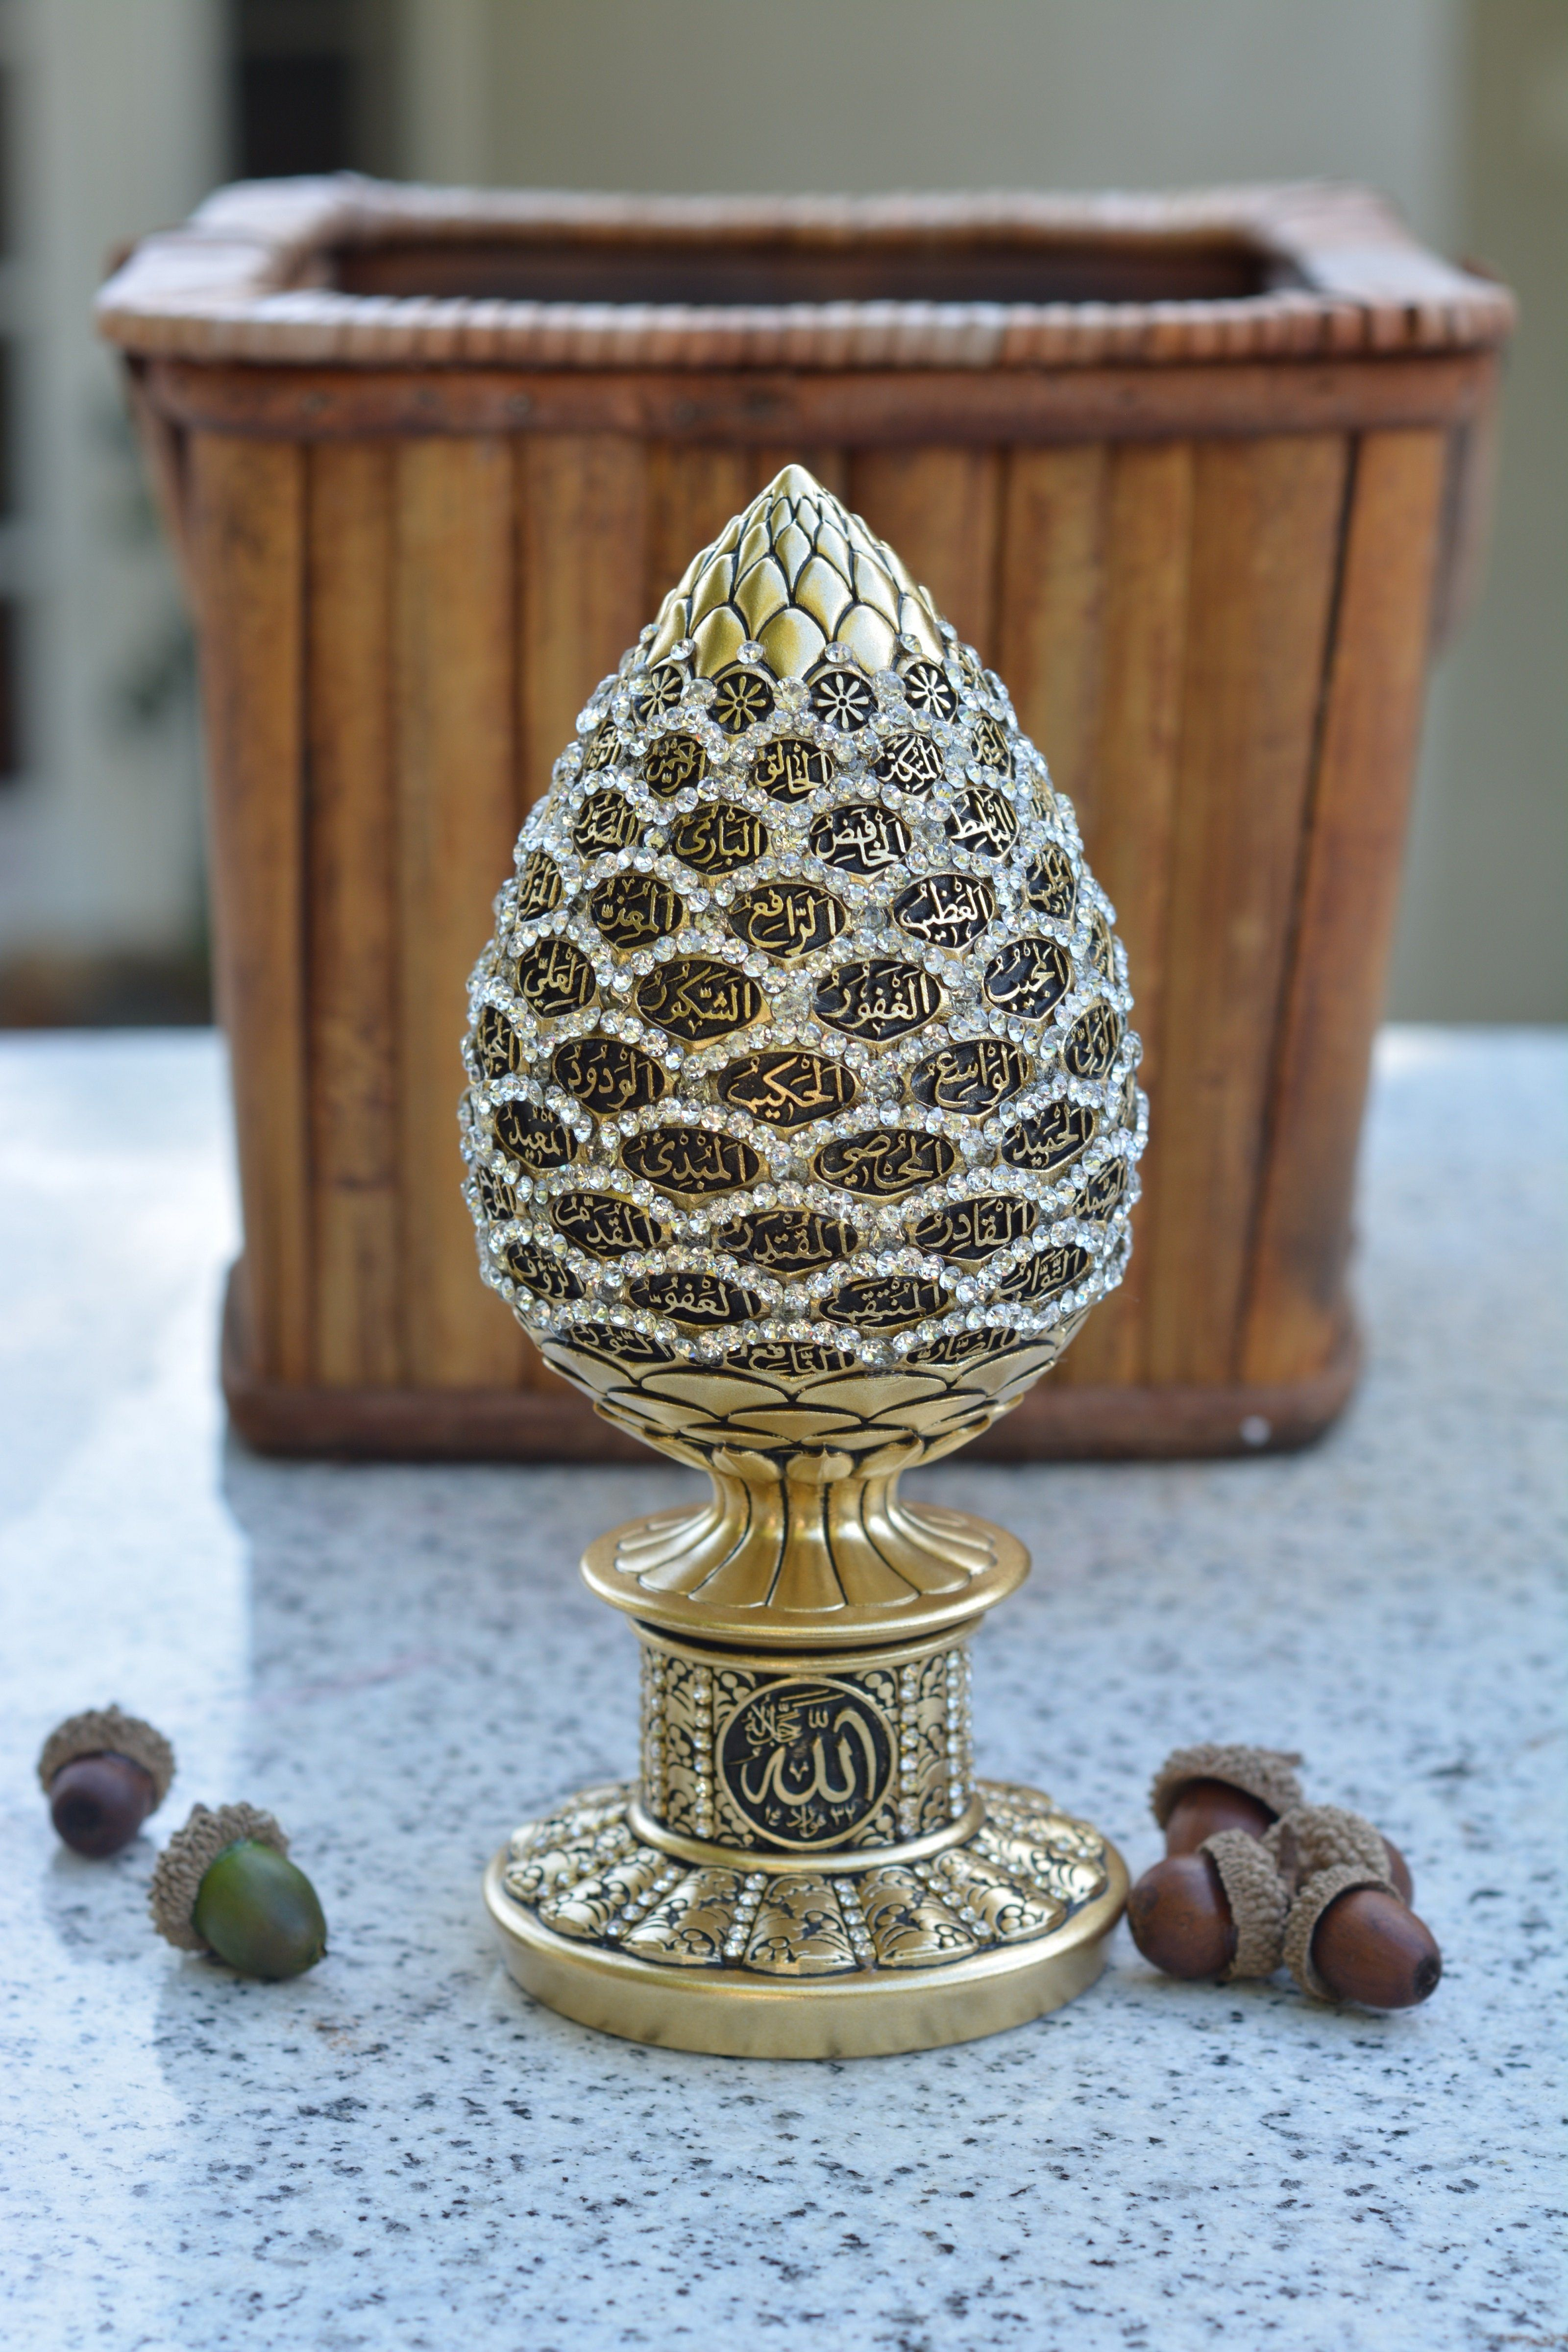 Crystal Rosebud with Asmaul Husna (99 Names Of Allah) in